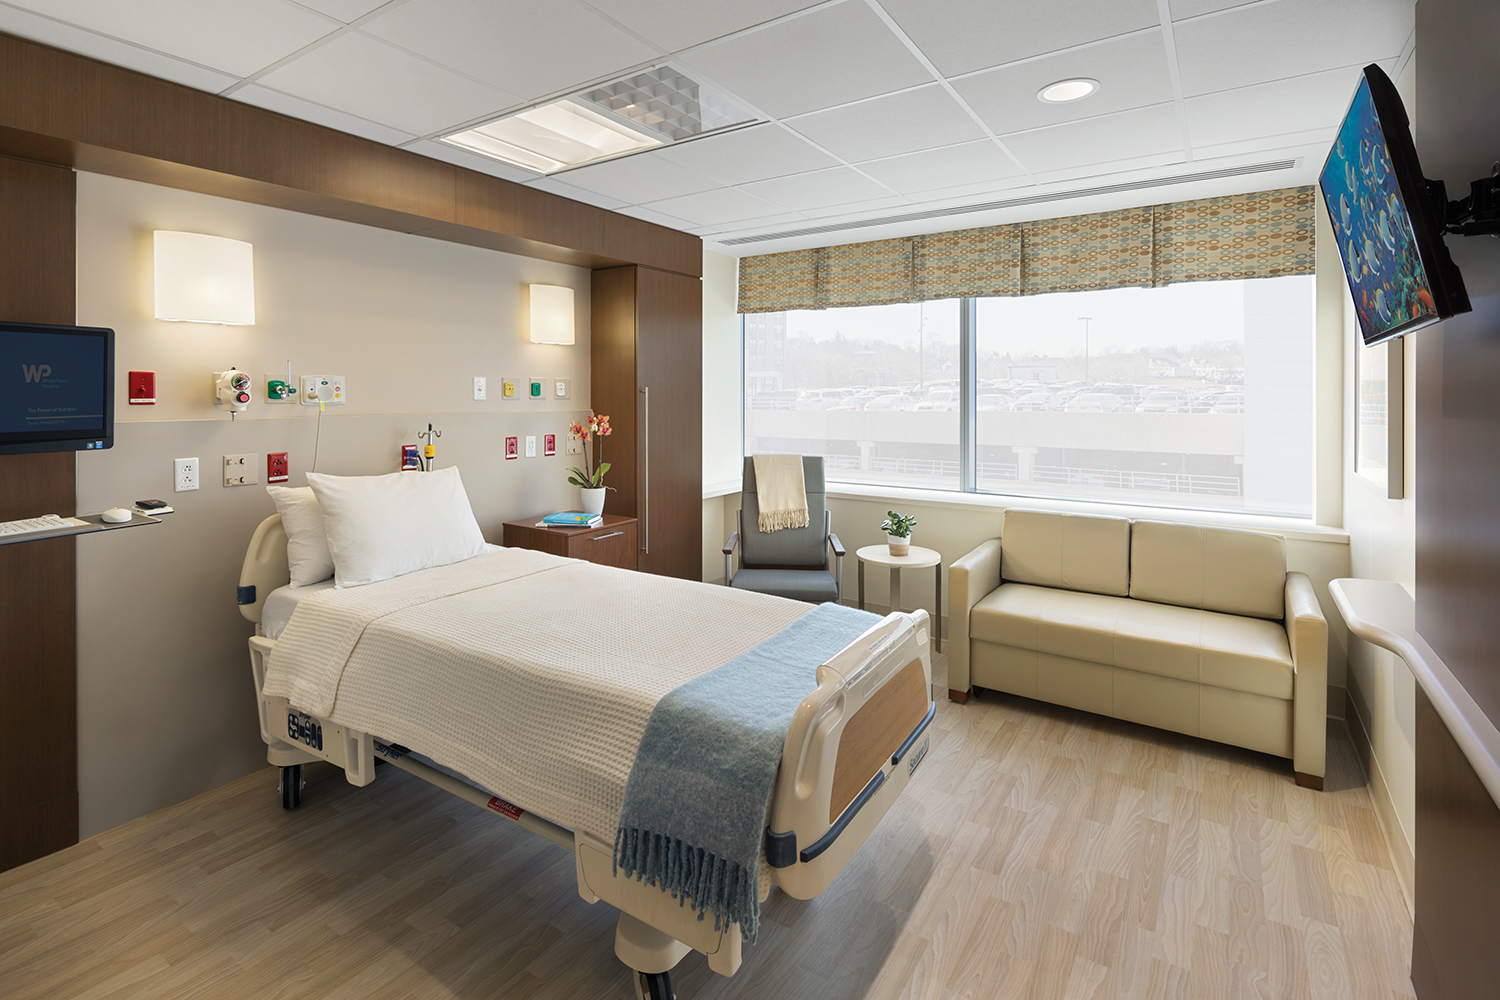 Unity overbed and wall sconce luminaires provide comforting medical lighting in a bright patient room.